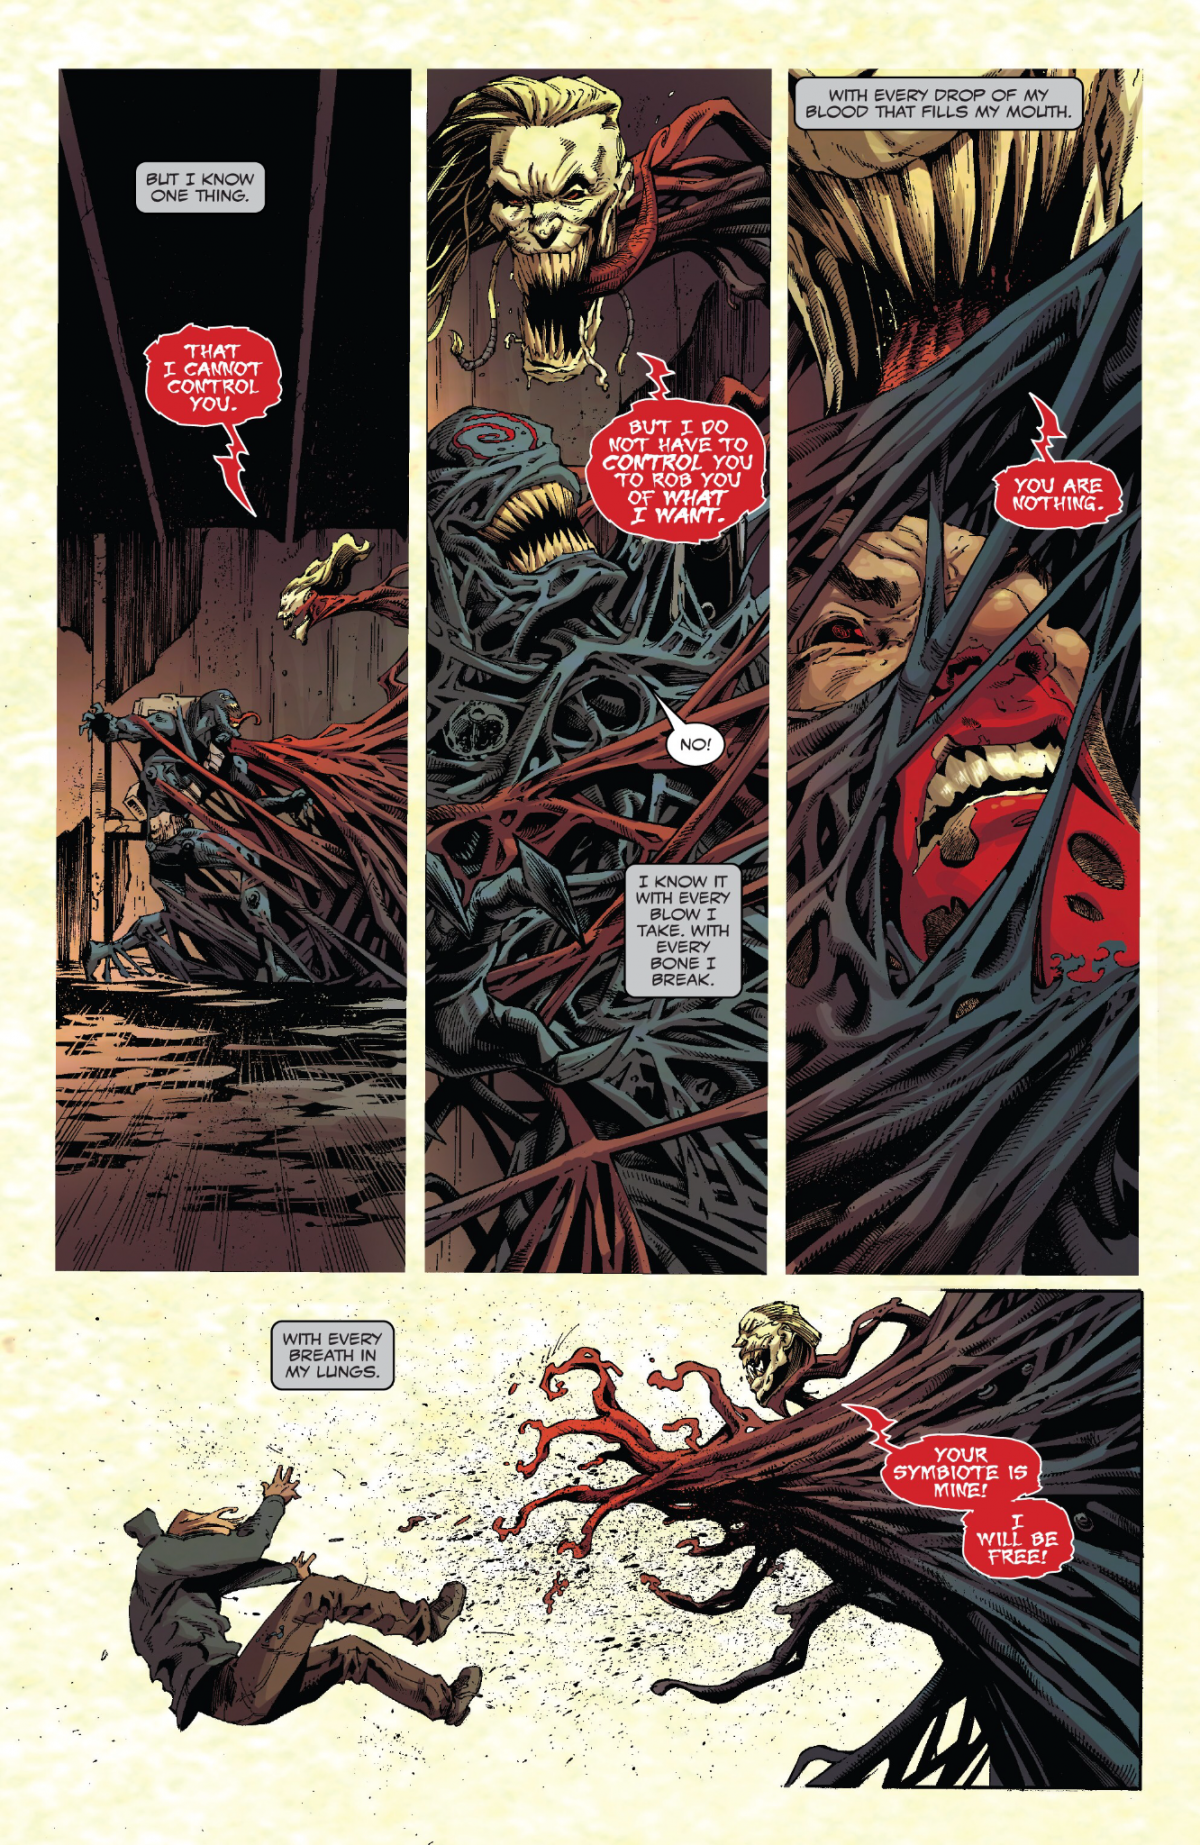 Ryan Stegman And Donny Cates' VENOM Is A Brain-Munchingly